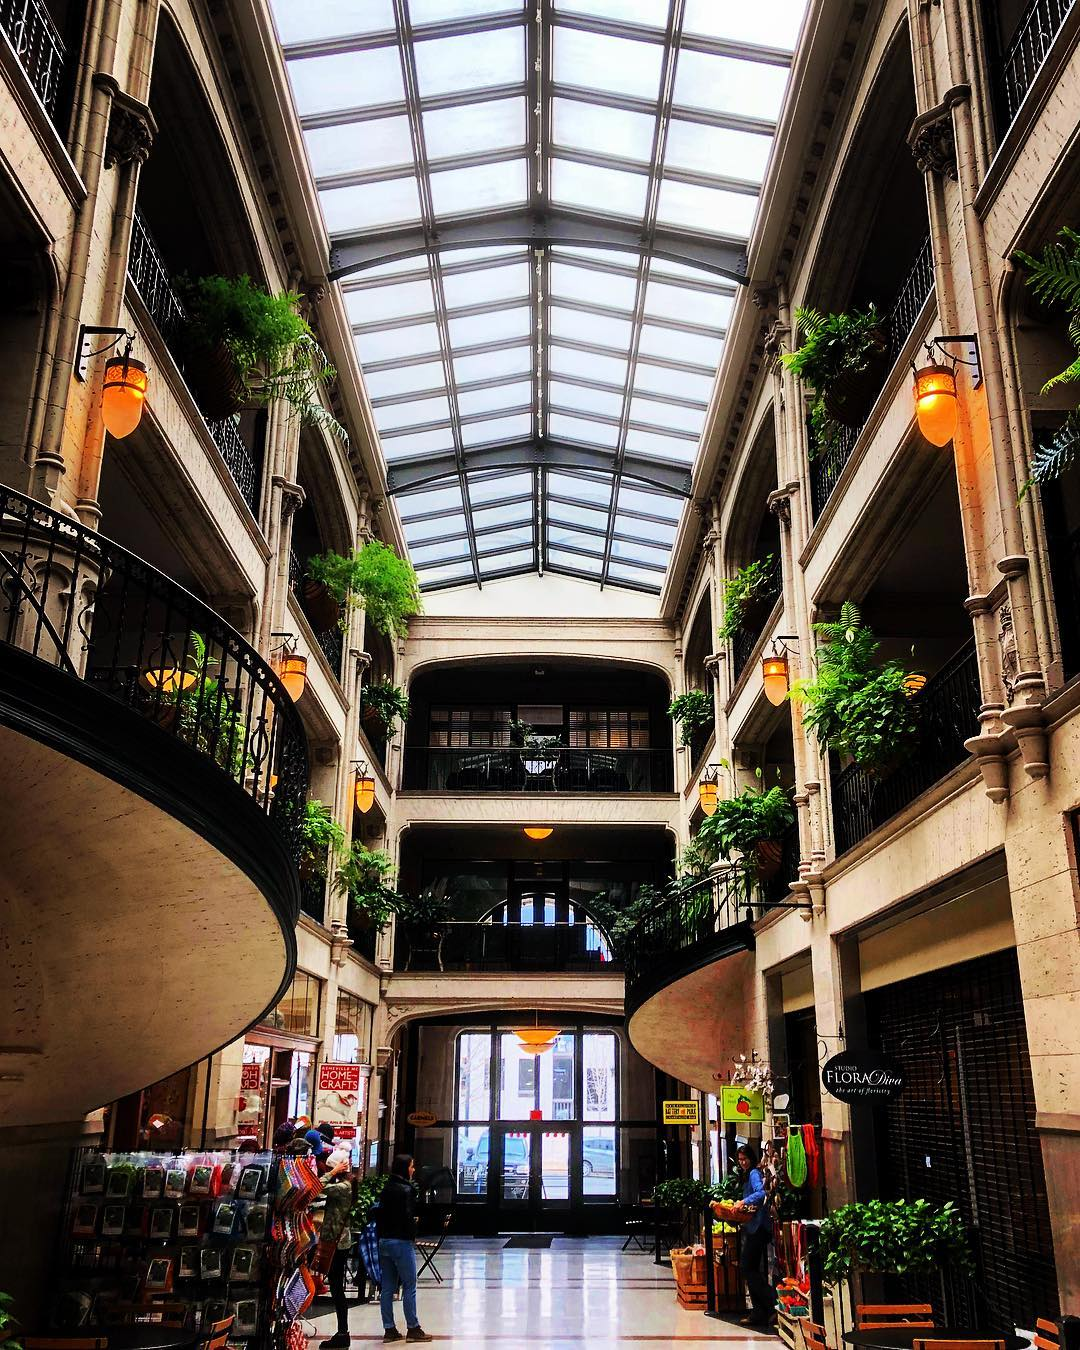 Asheville Things To Do - The Grove Arcade Public Market - Original Photo